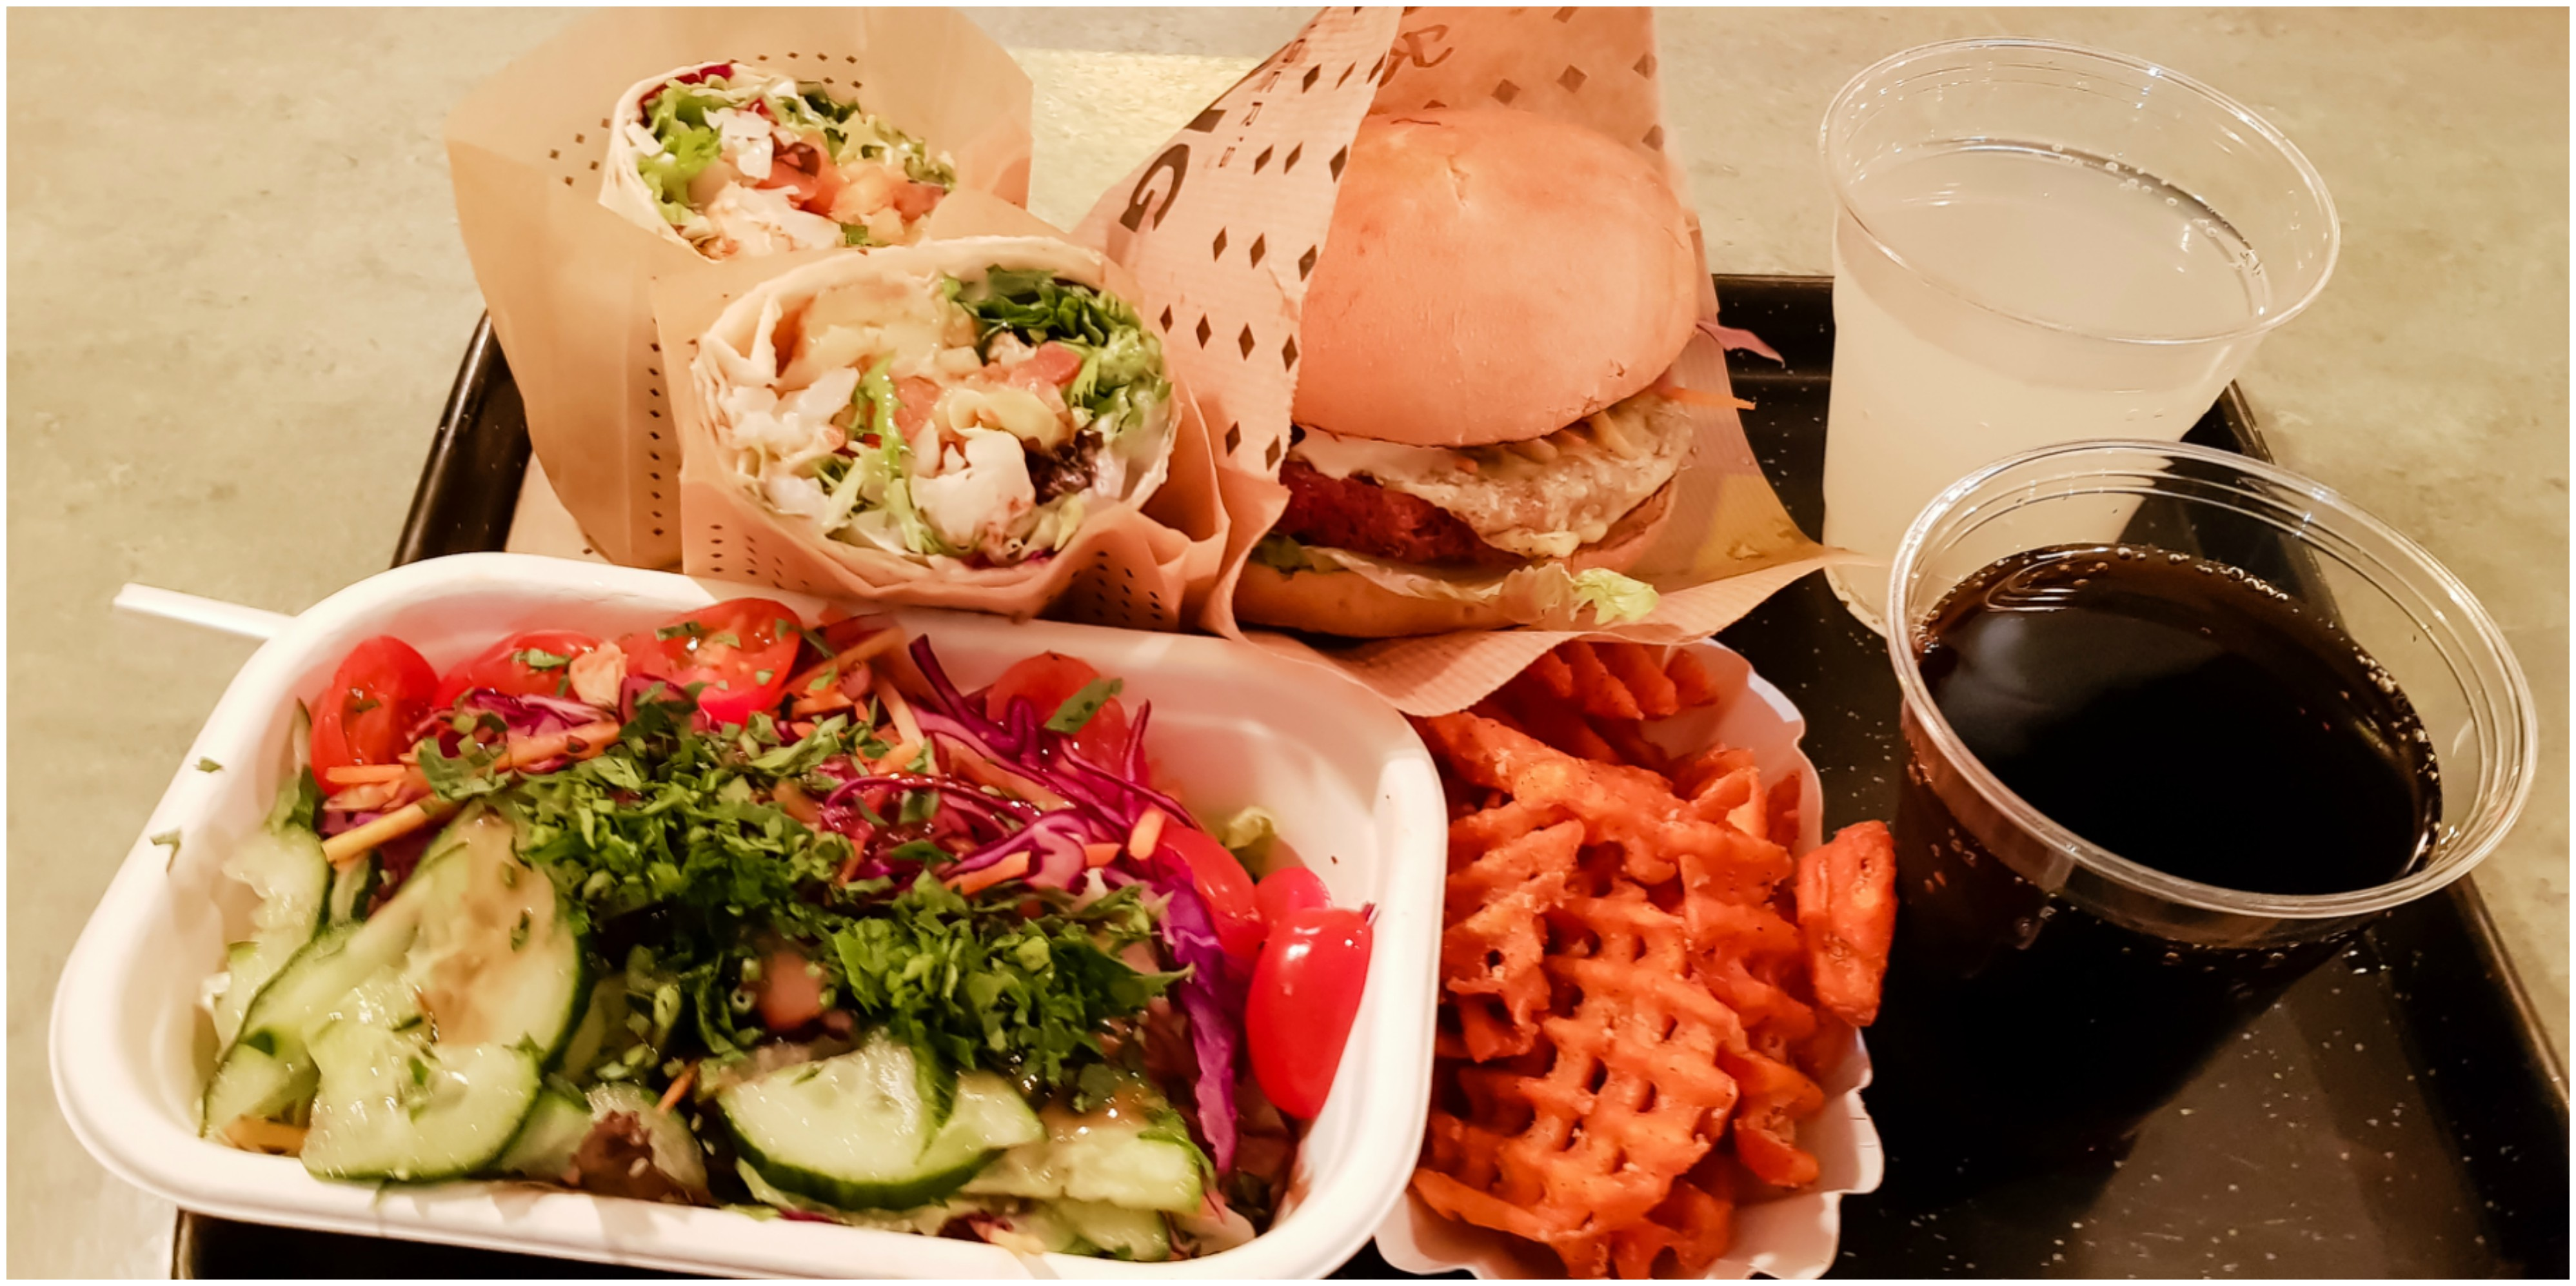 swing-kitchen-wien-vegan-burger-wrap-salad